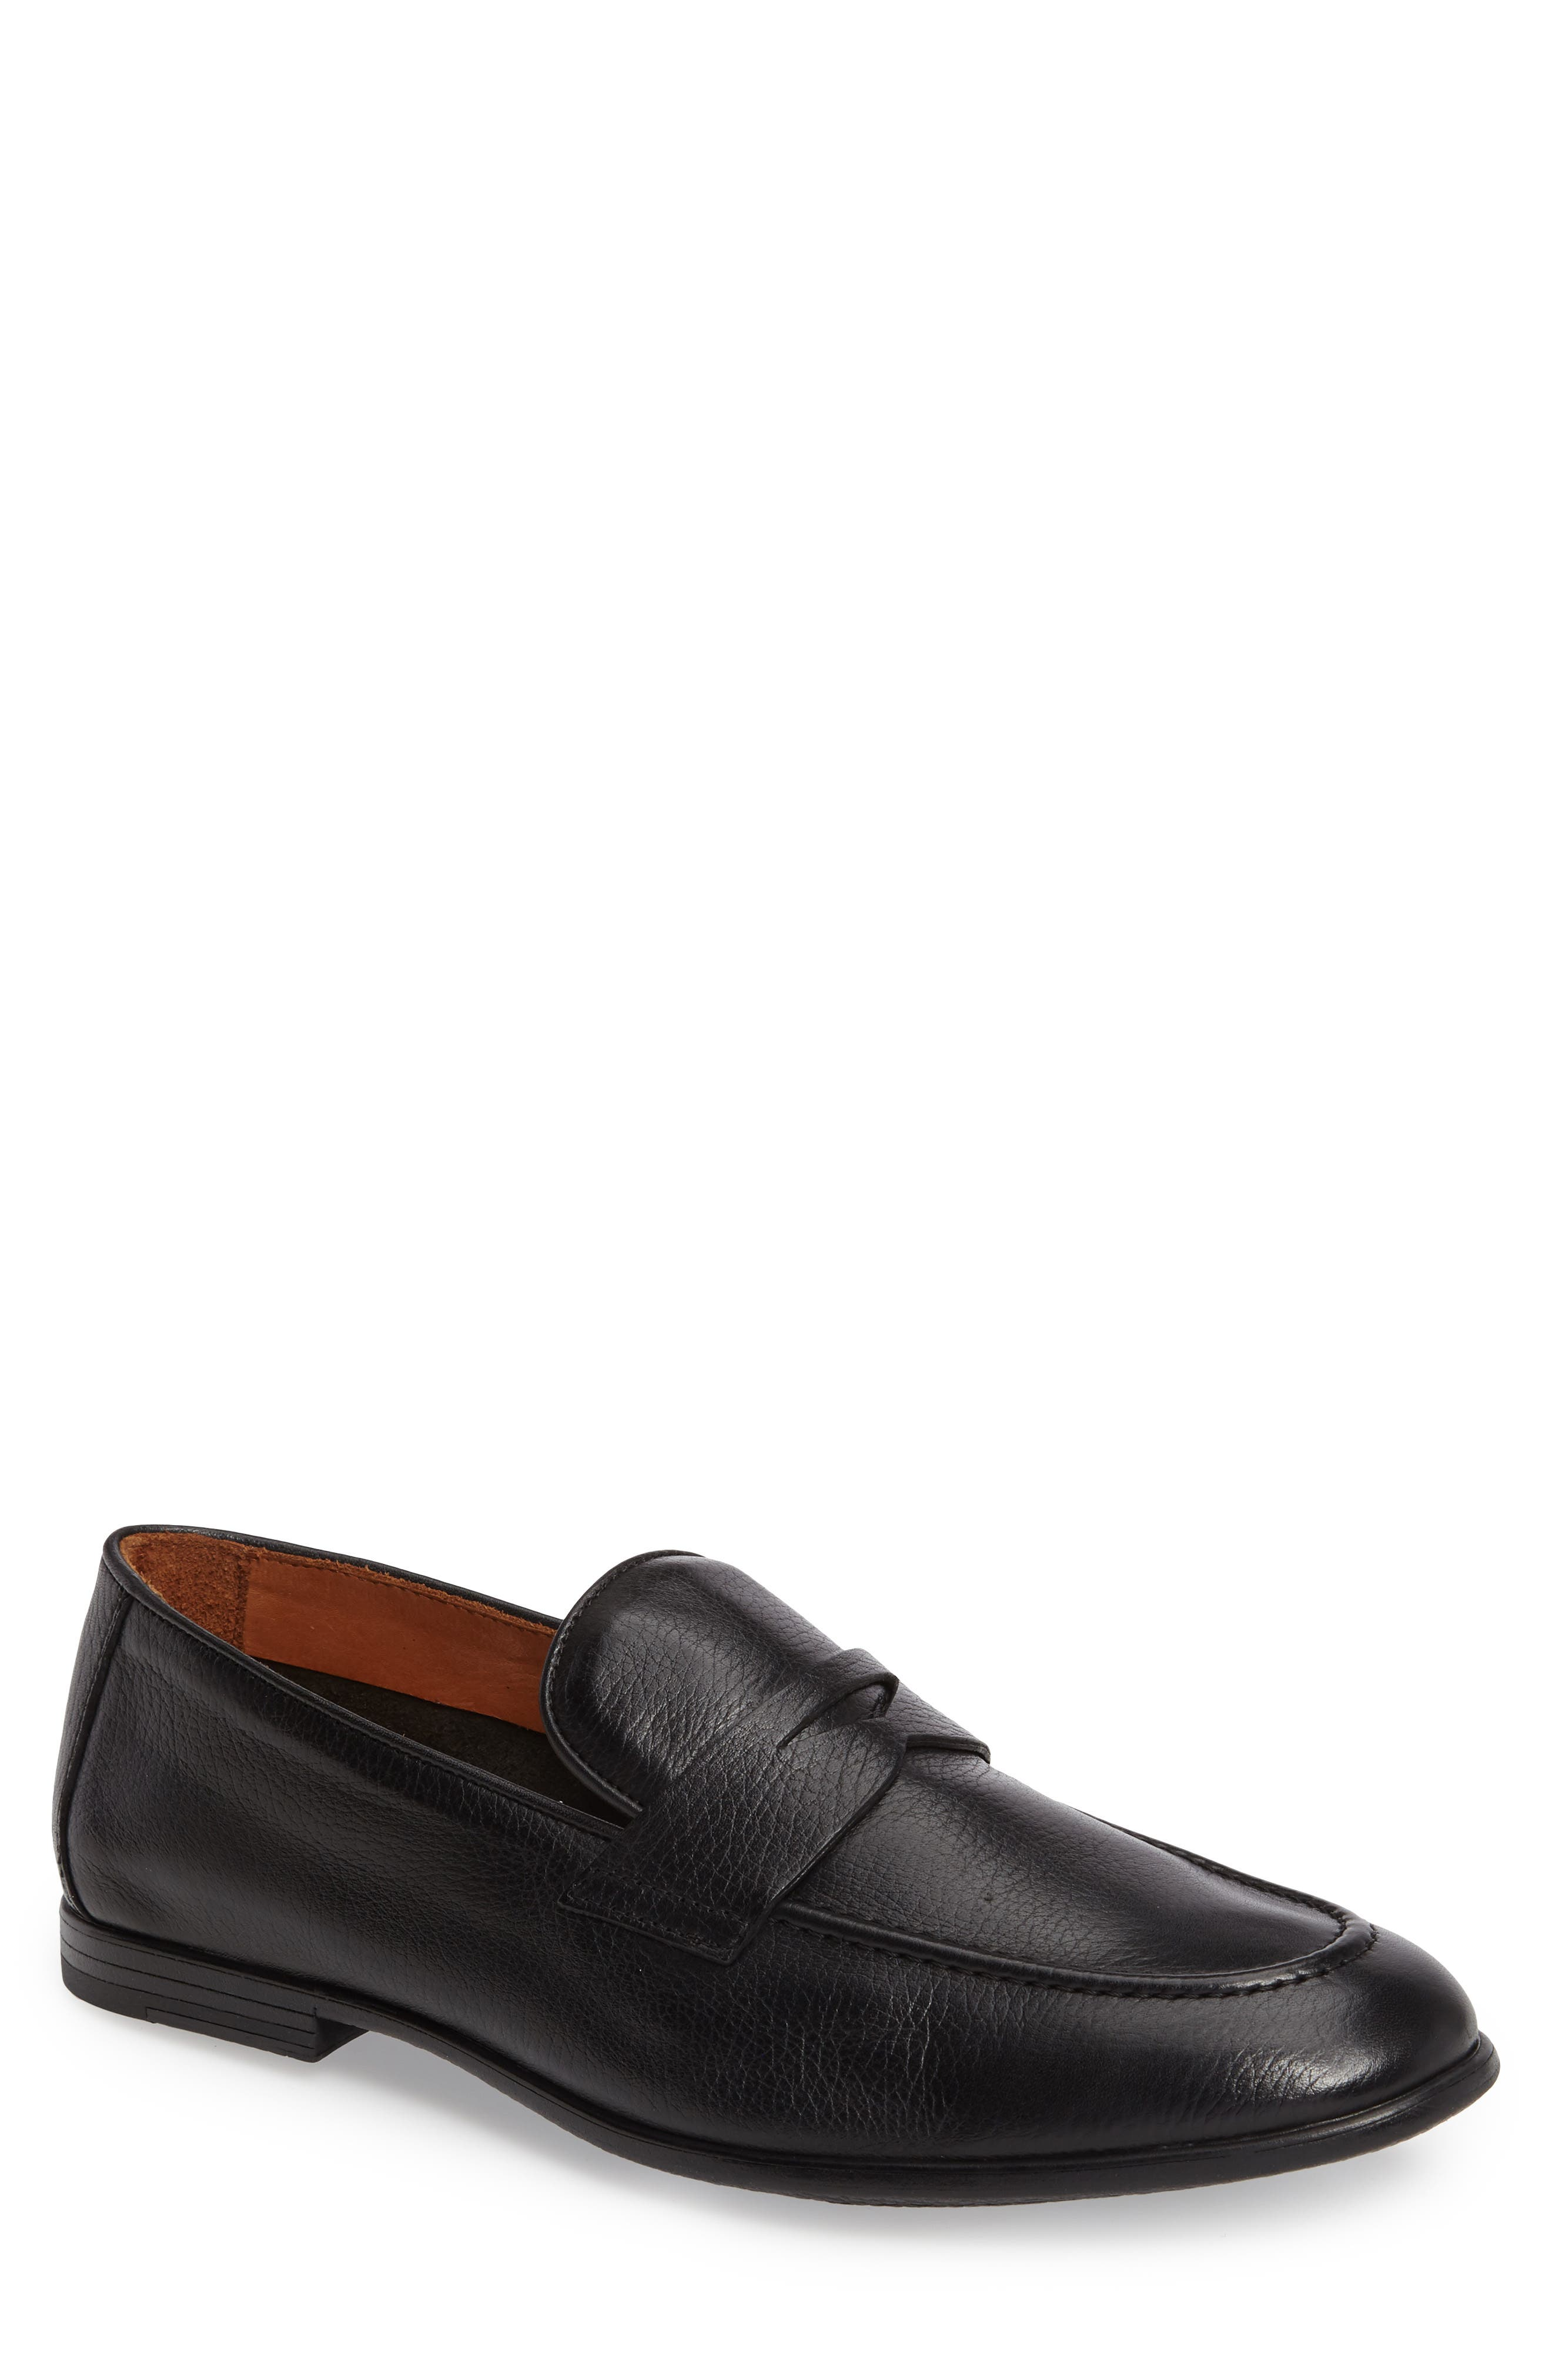 Dillon Penny Loafer,                             Main thumbnail 1, color,                             001